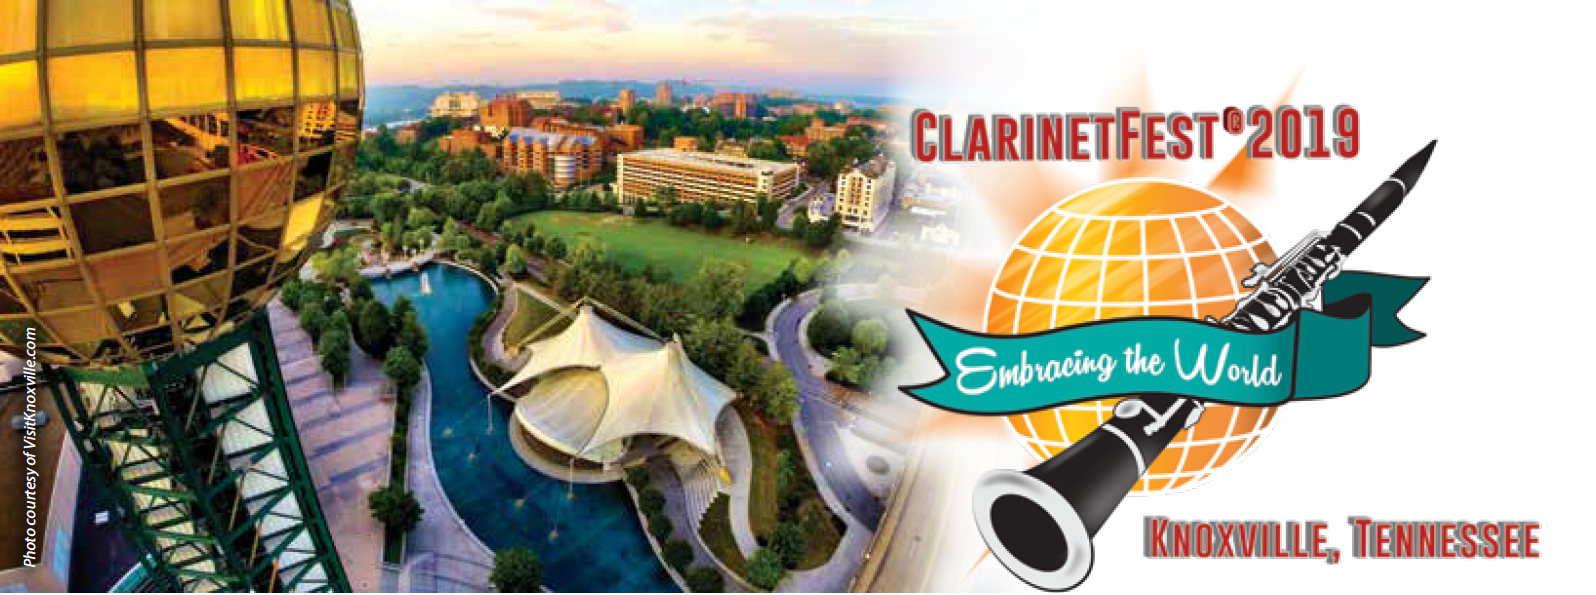 clarinetfest banner image